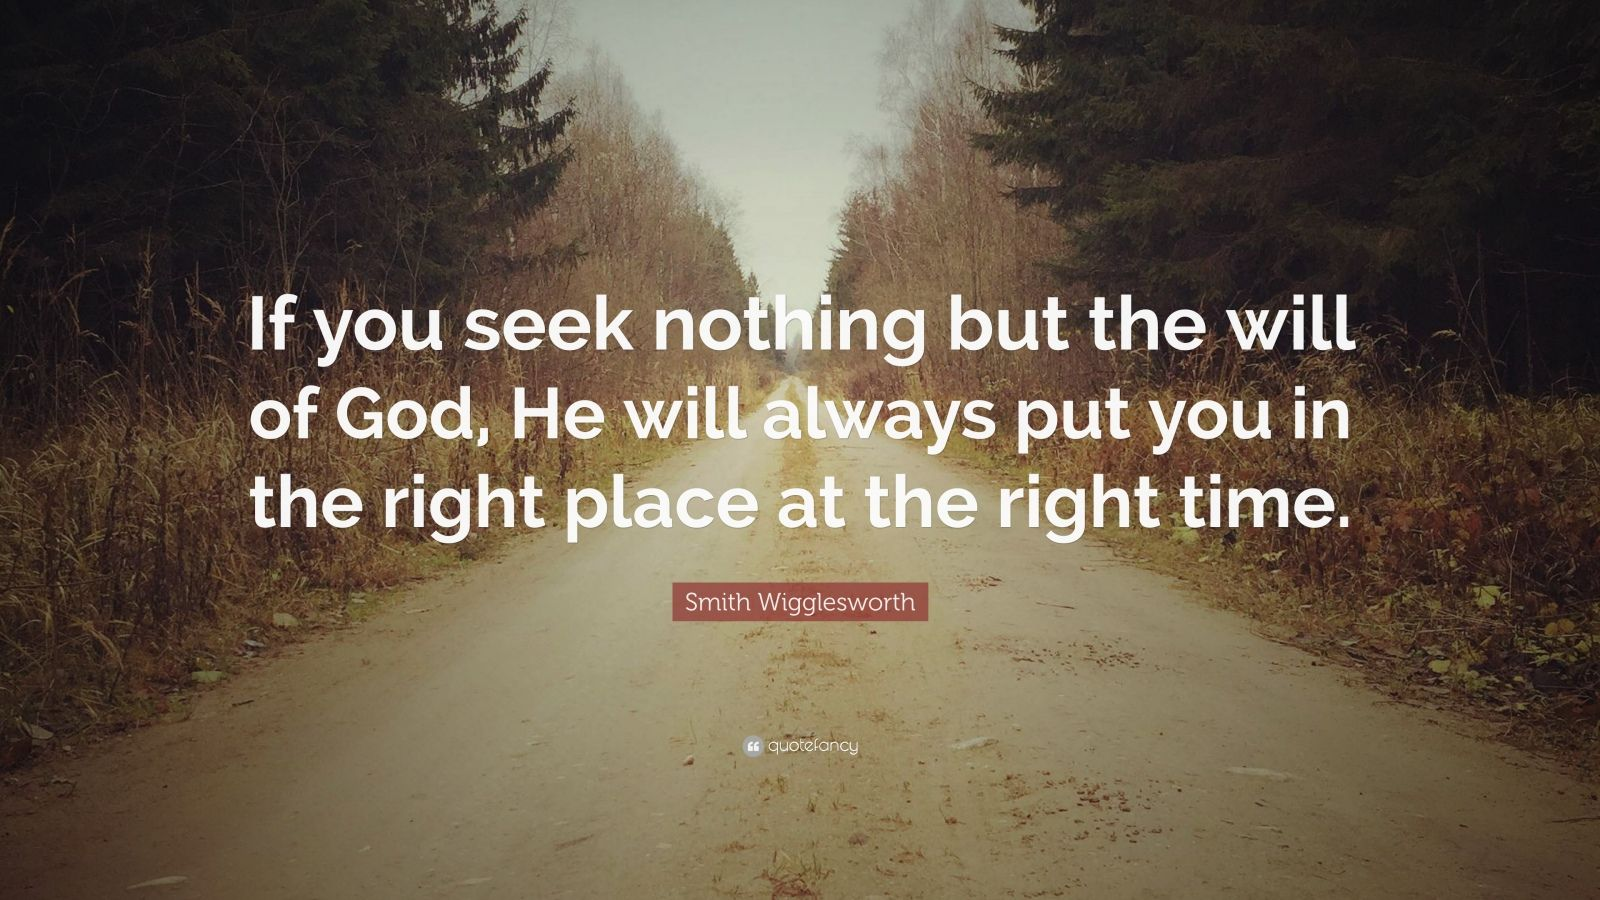 Smith Wigglesworth Quote: If you seek nothing but the